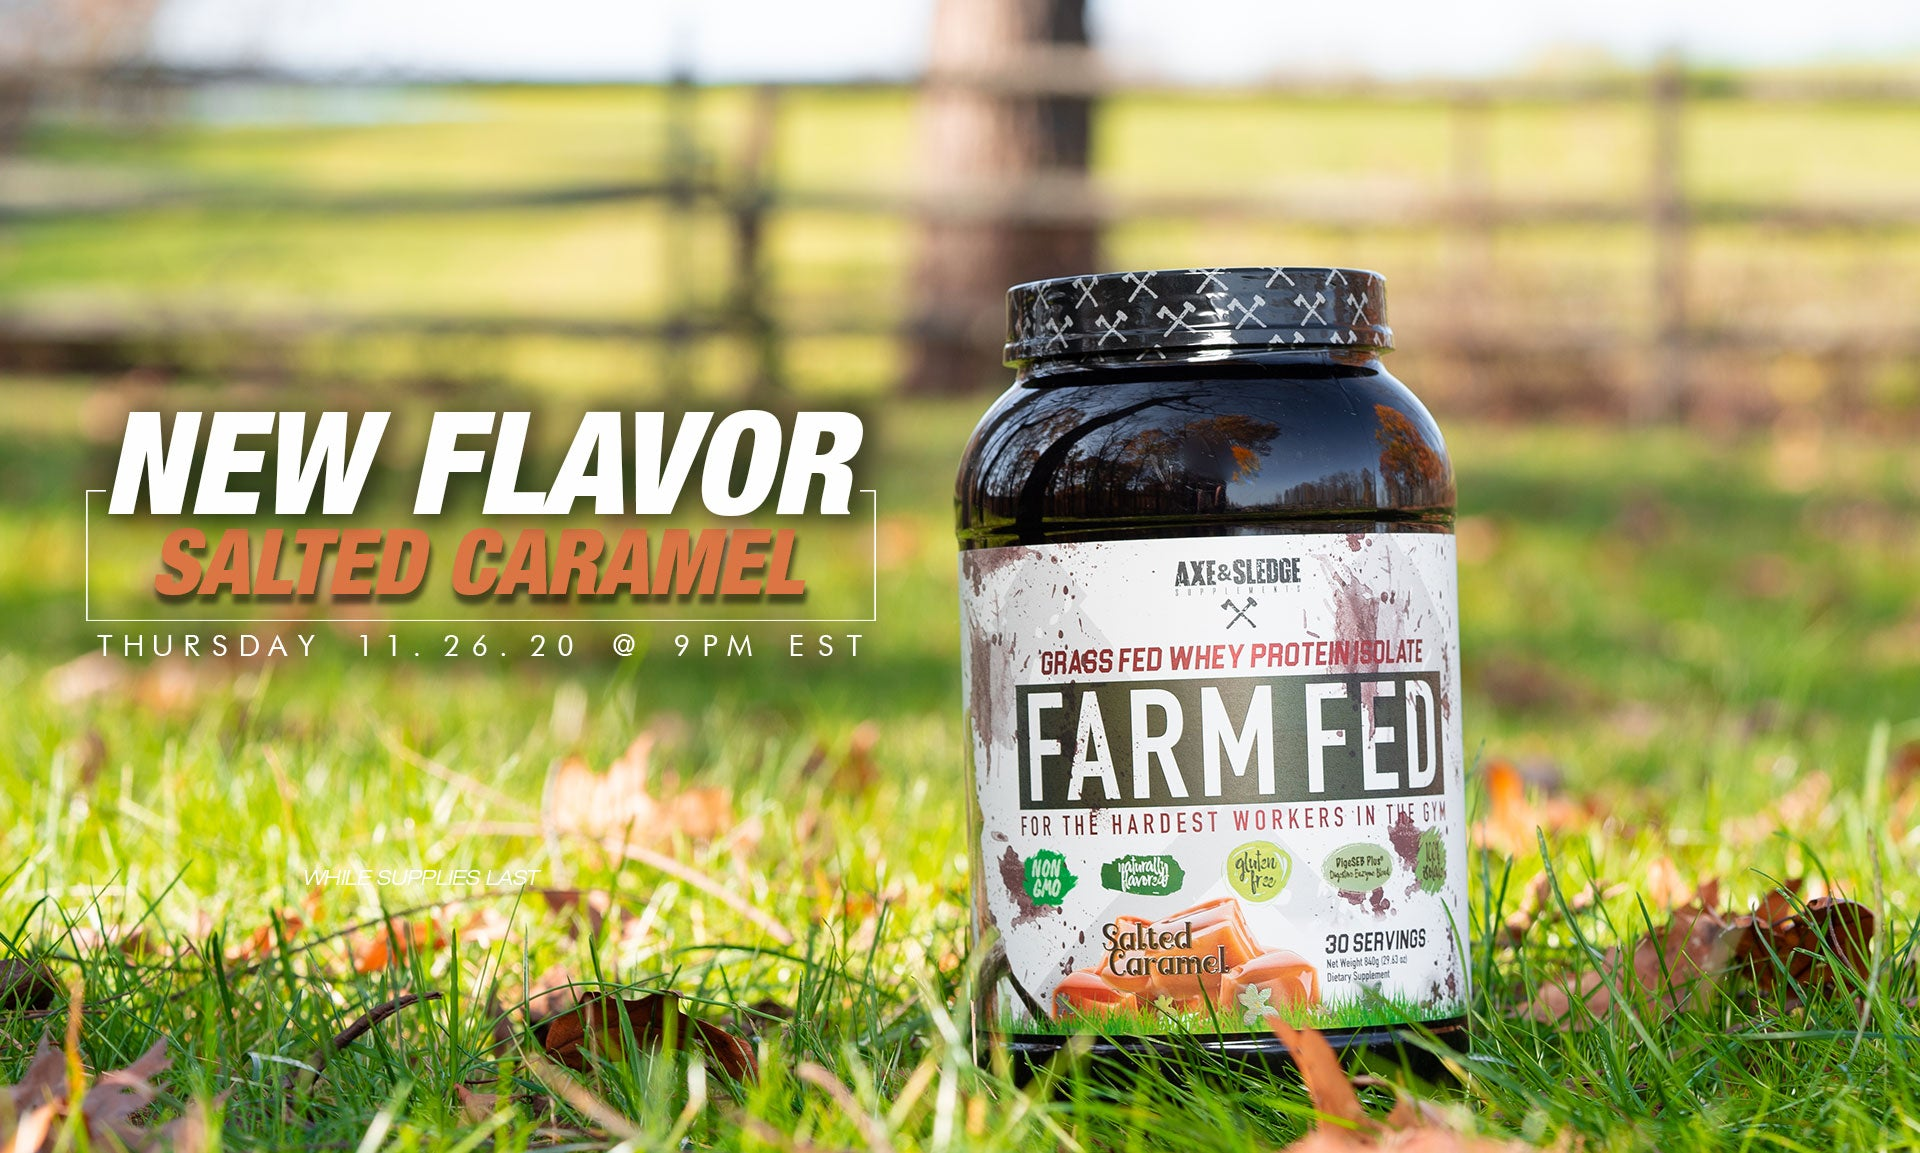 Farmfed Salted Caramel